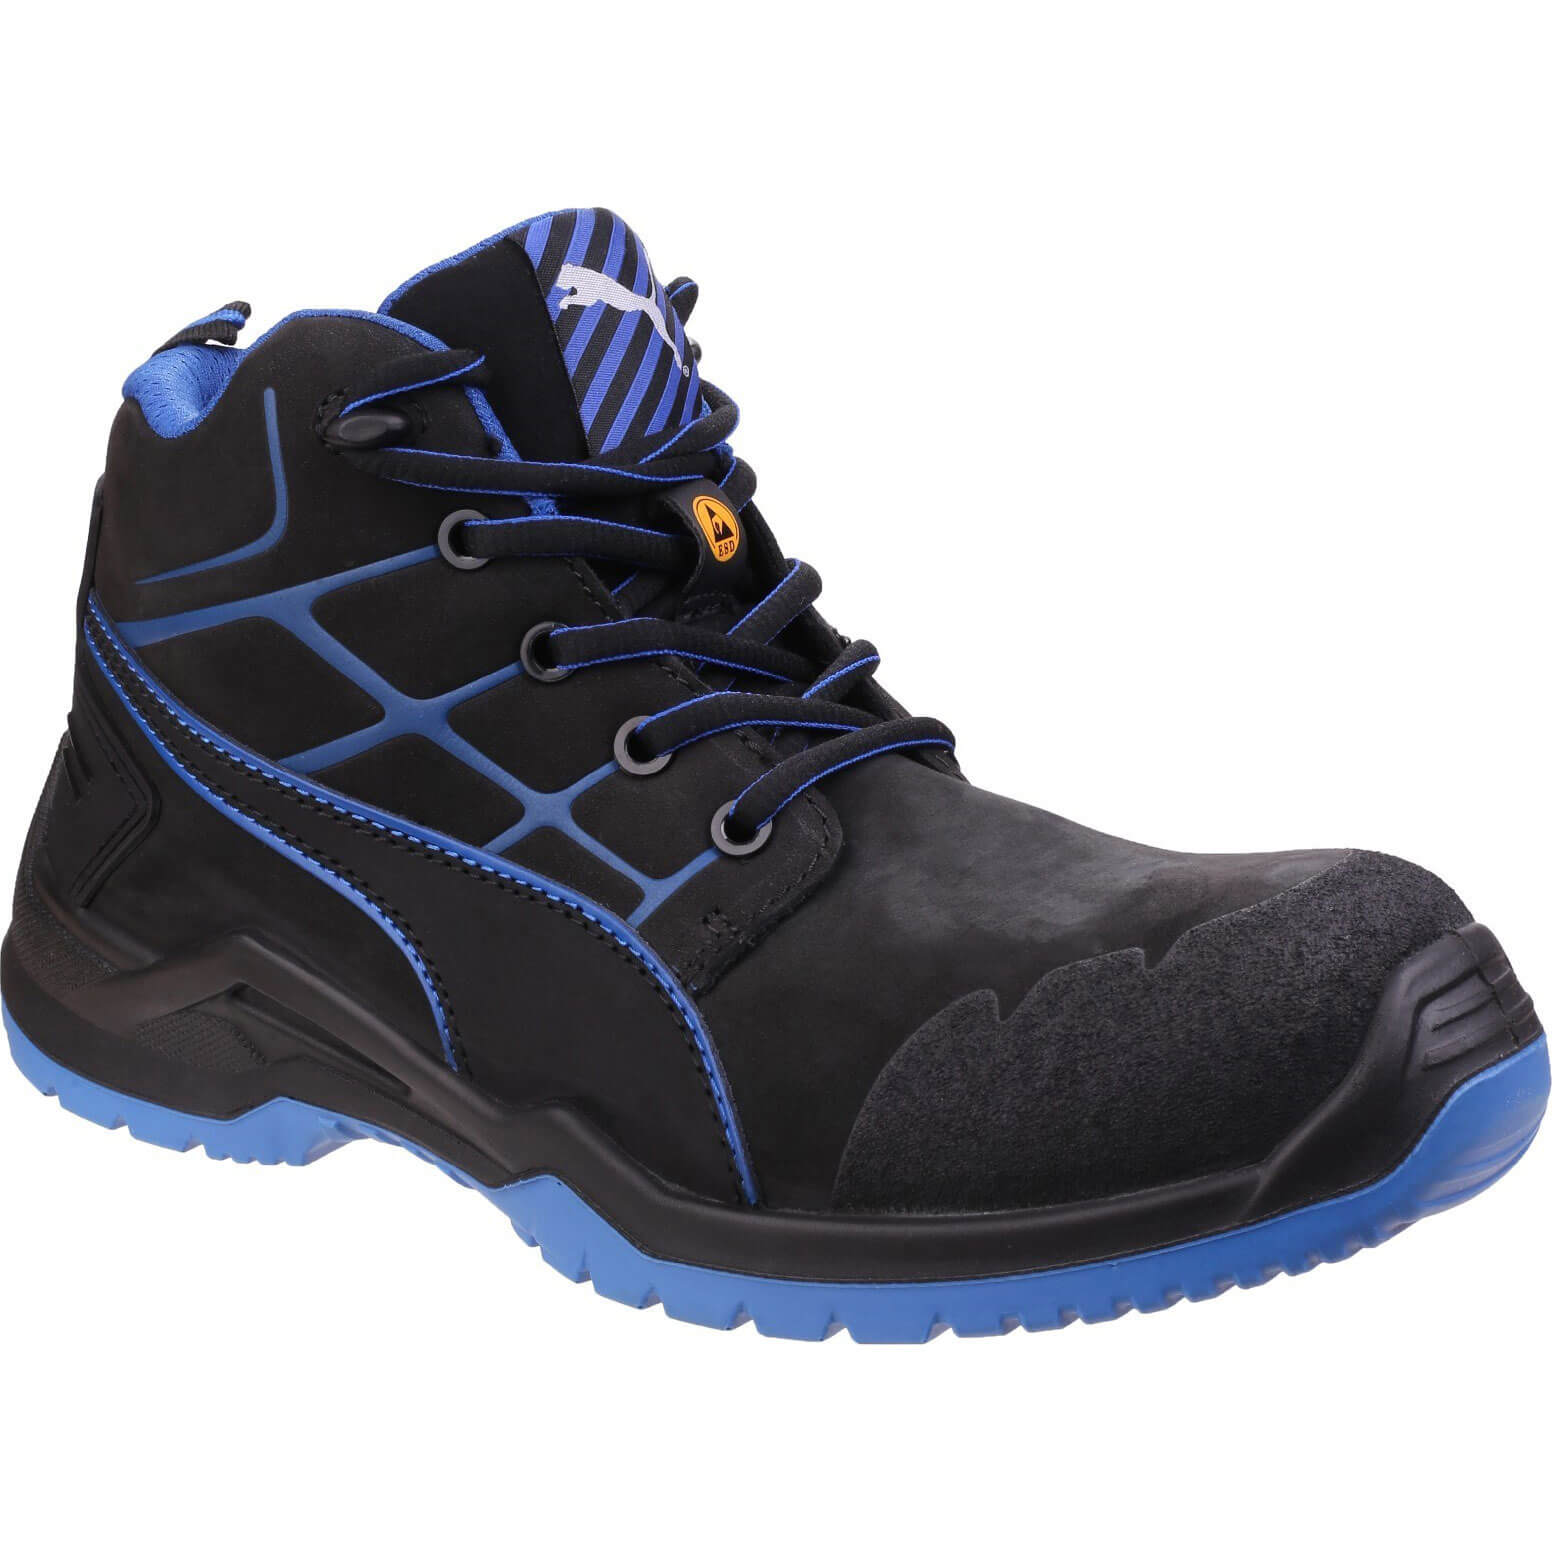 CHEAP Puma Mens Safety Krypton Safety Boots Blue Size 7 – Men's Footwear